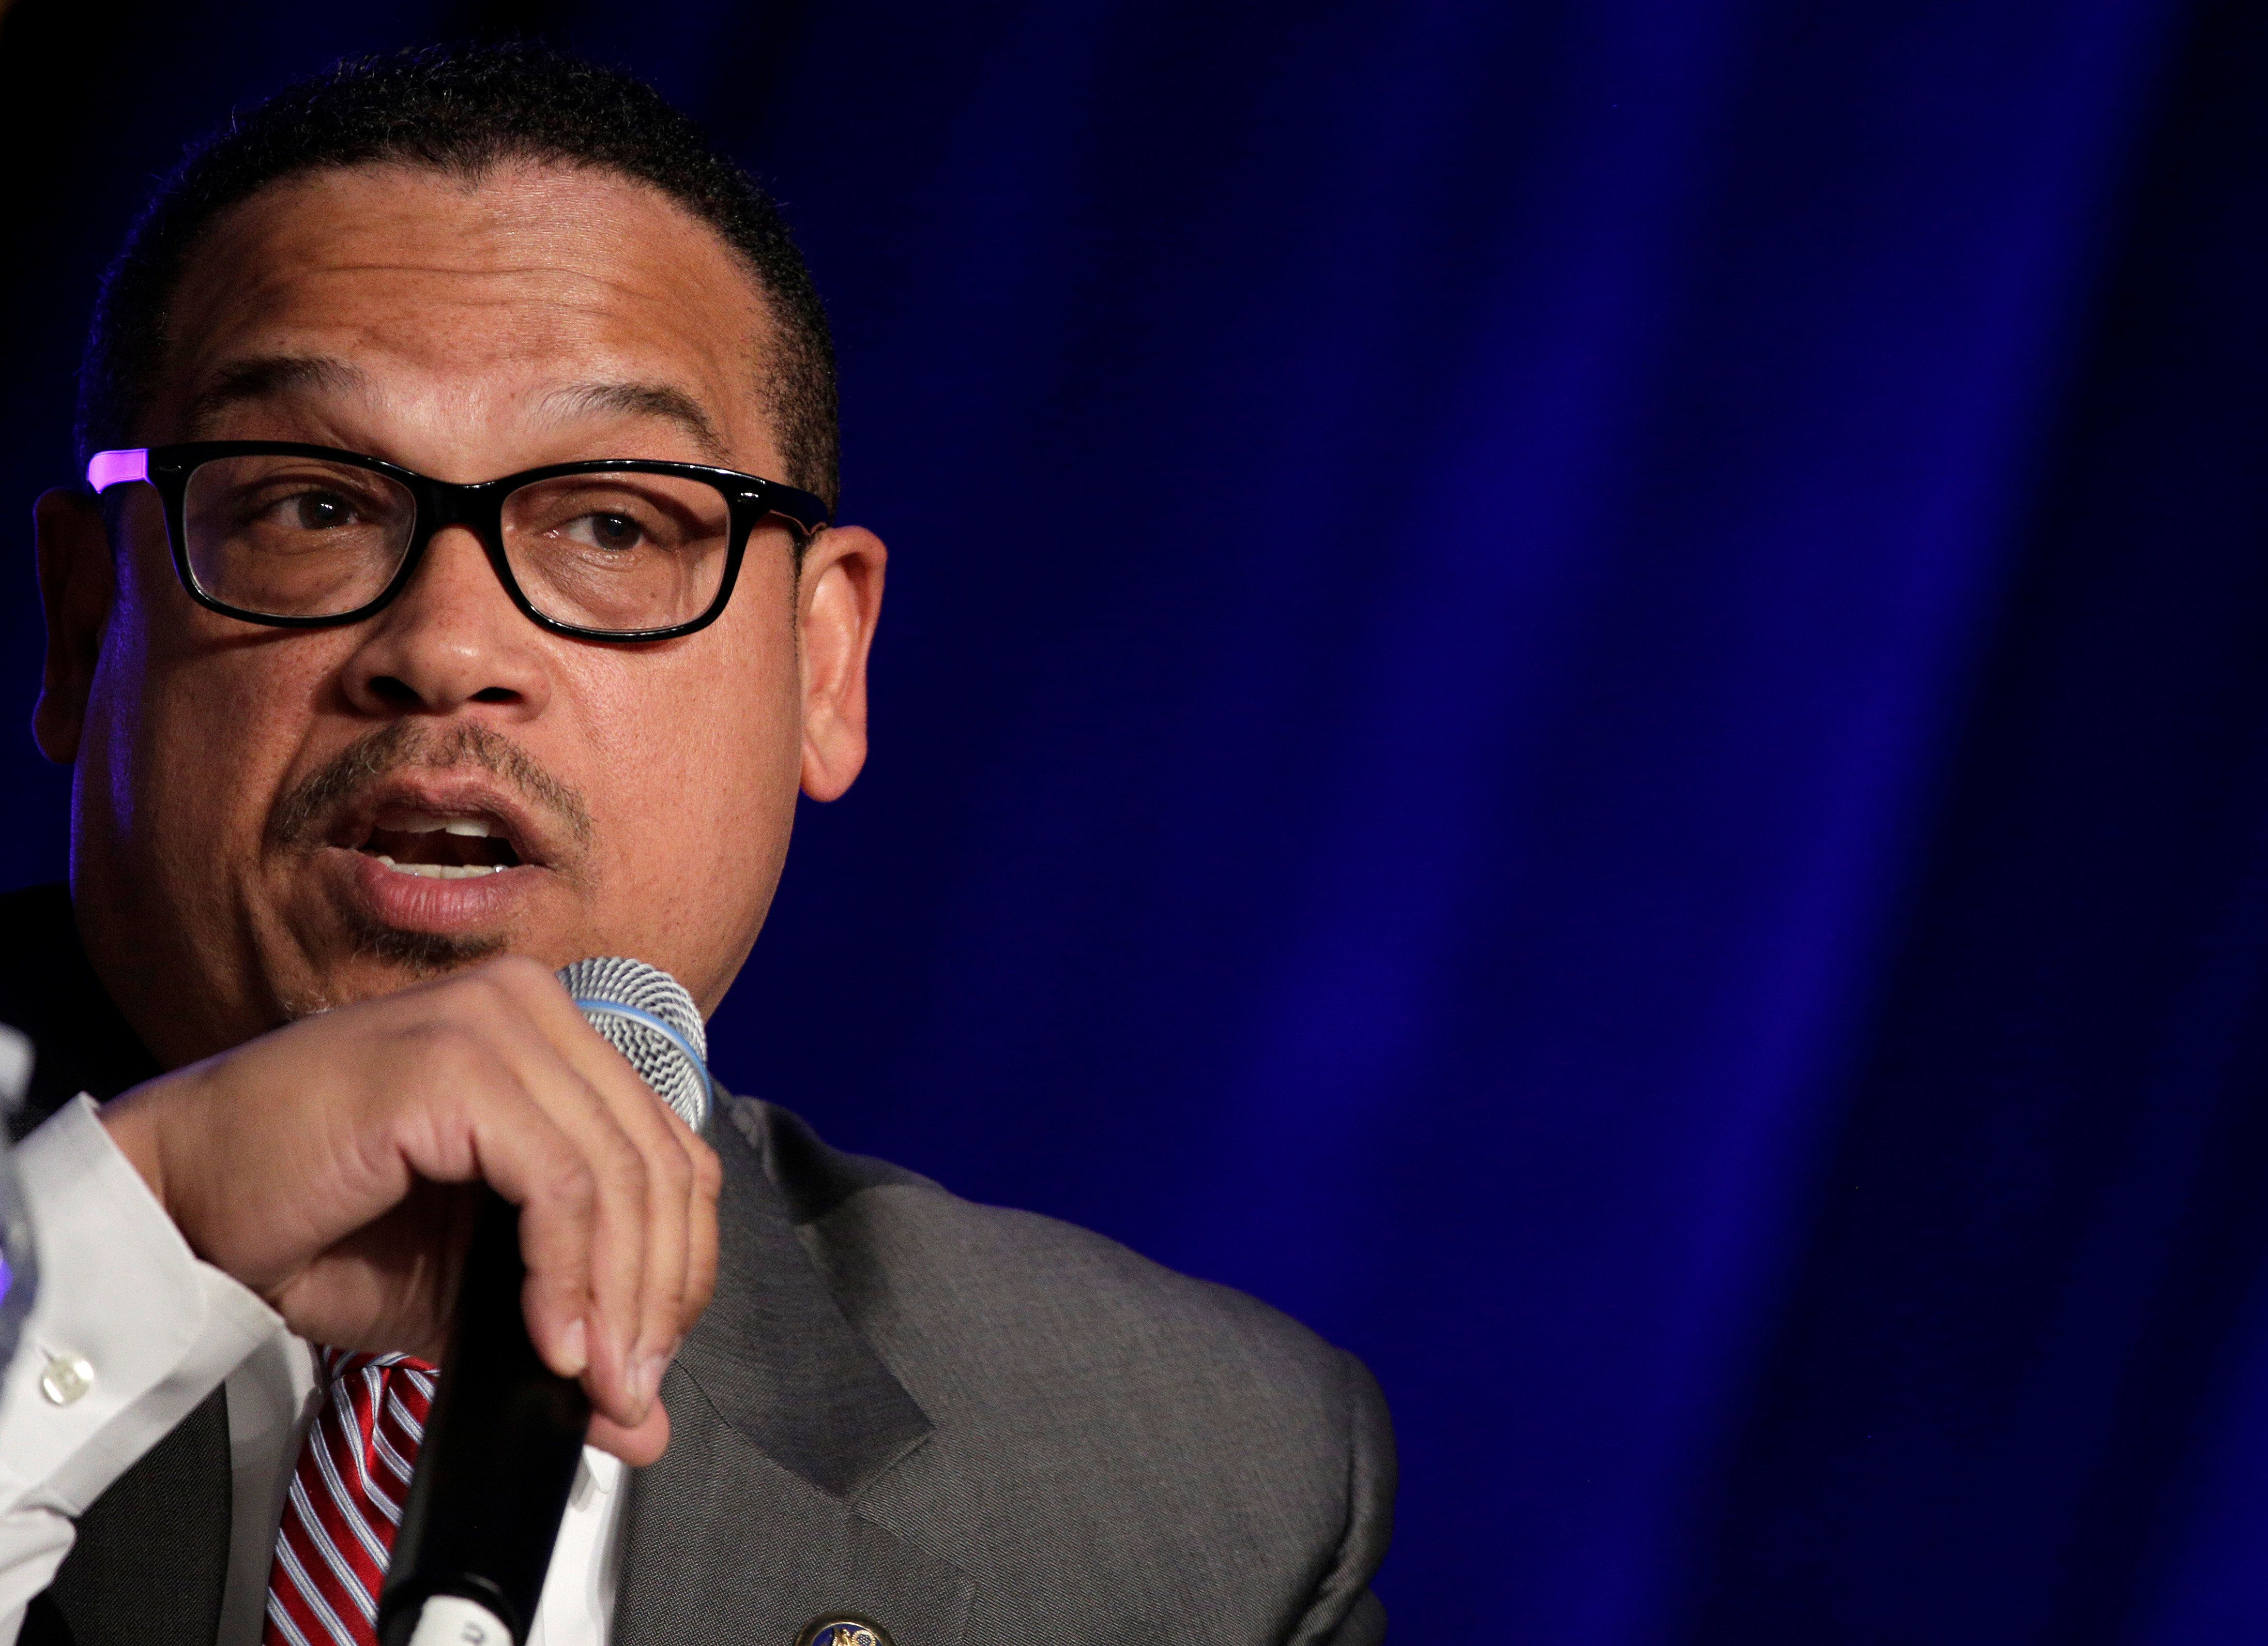 Rep. Keith Ellison (D-MN), a candidate for Democratic National Committee Chairman, speaks during a Democratic National Committee forum in Baltimore, Maryland, U.S., February 11, 2017.      REUTERS/Joshua Roberts